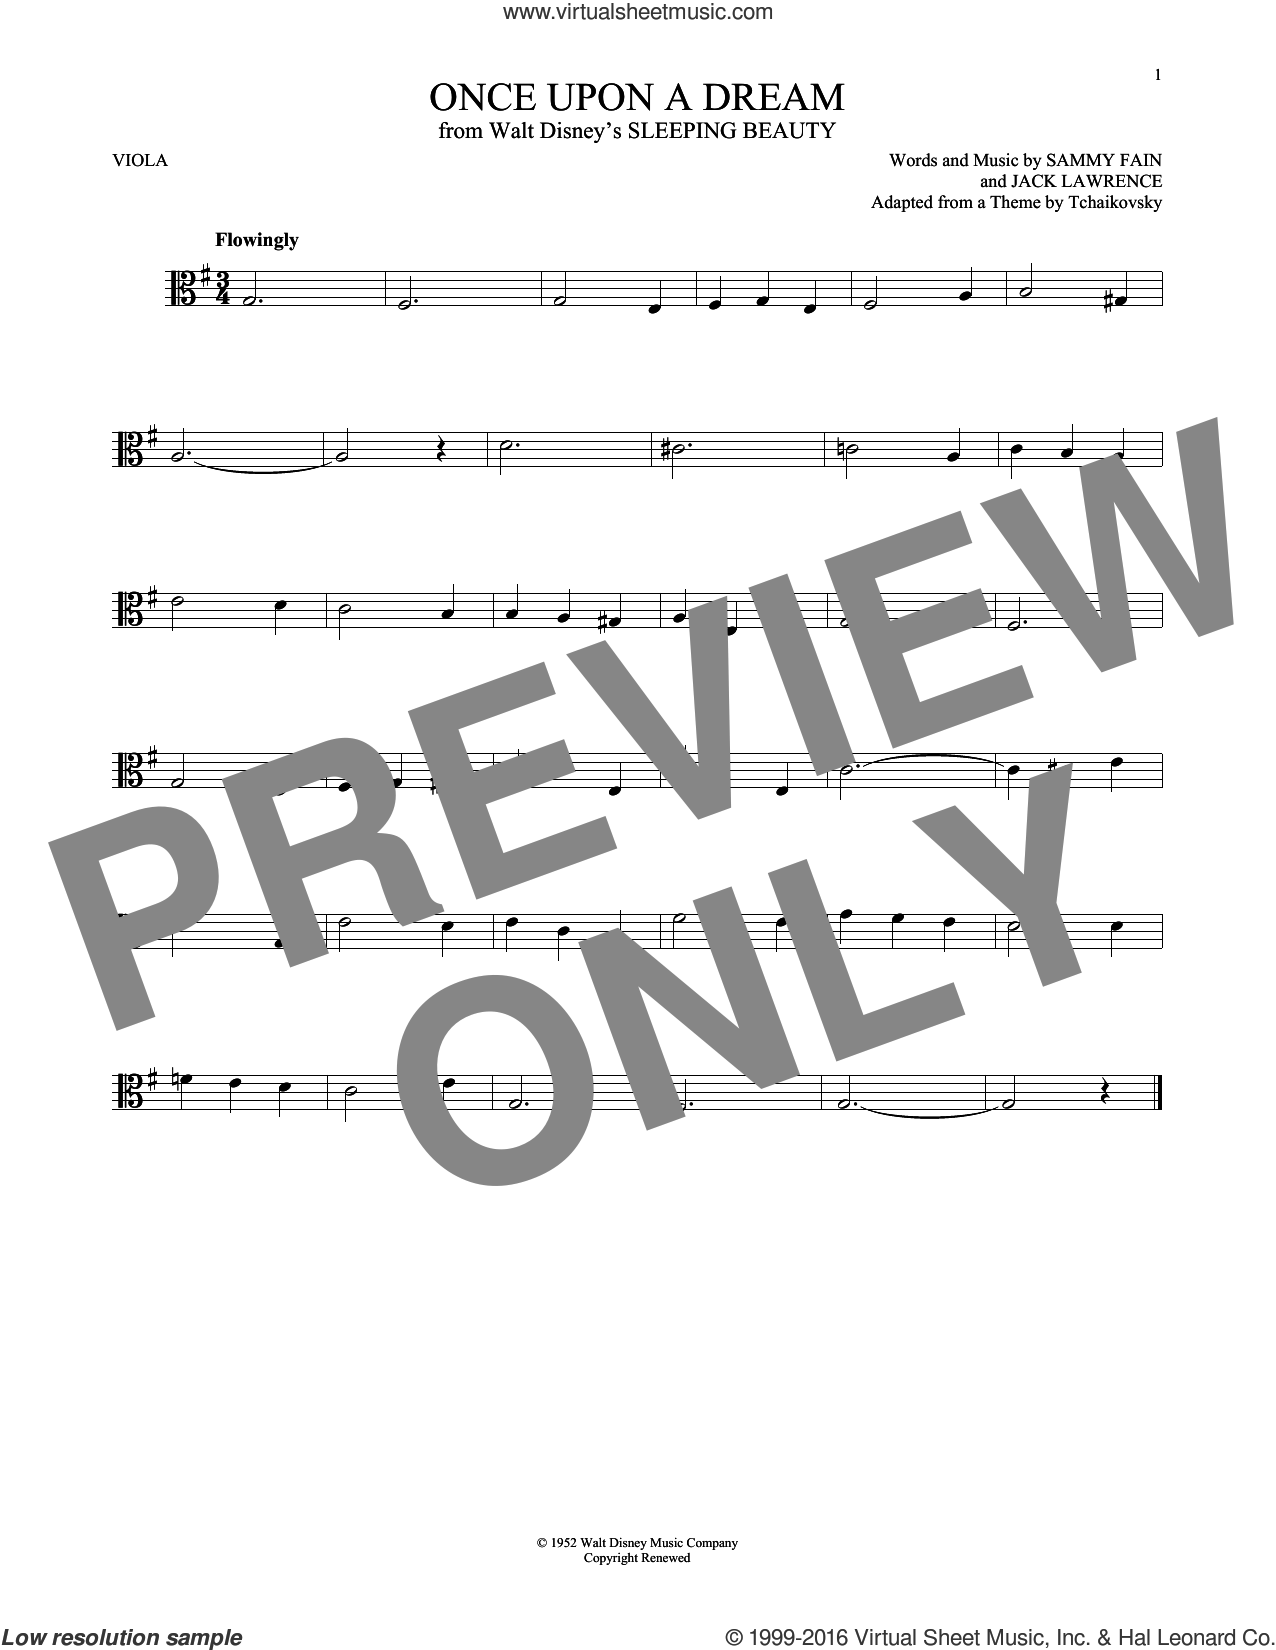 Once Upon A Dream sheet music for viola solo by Sammy Fain and Jack Lawrence. Score Image Preview.